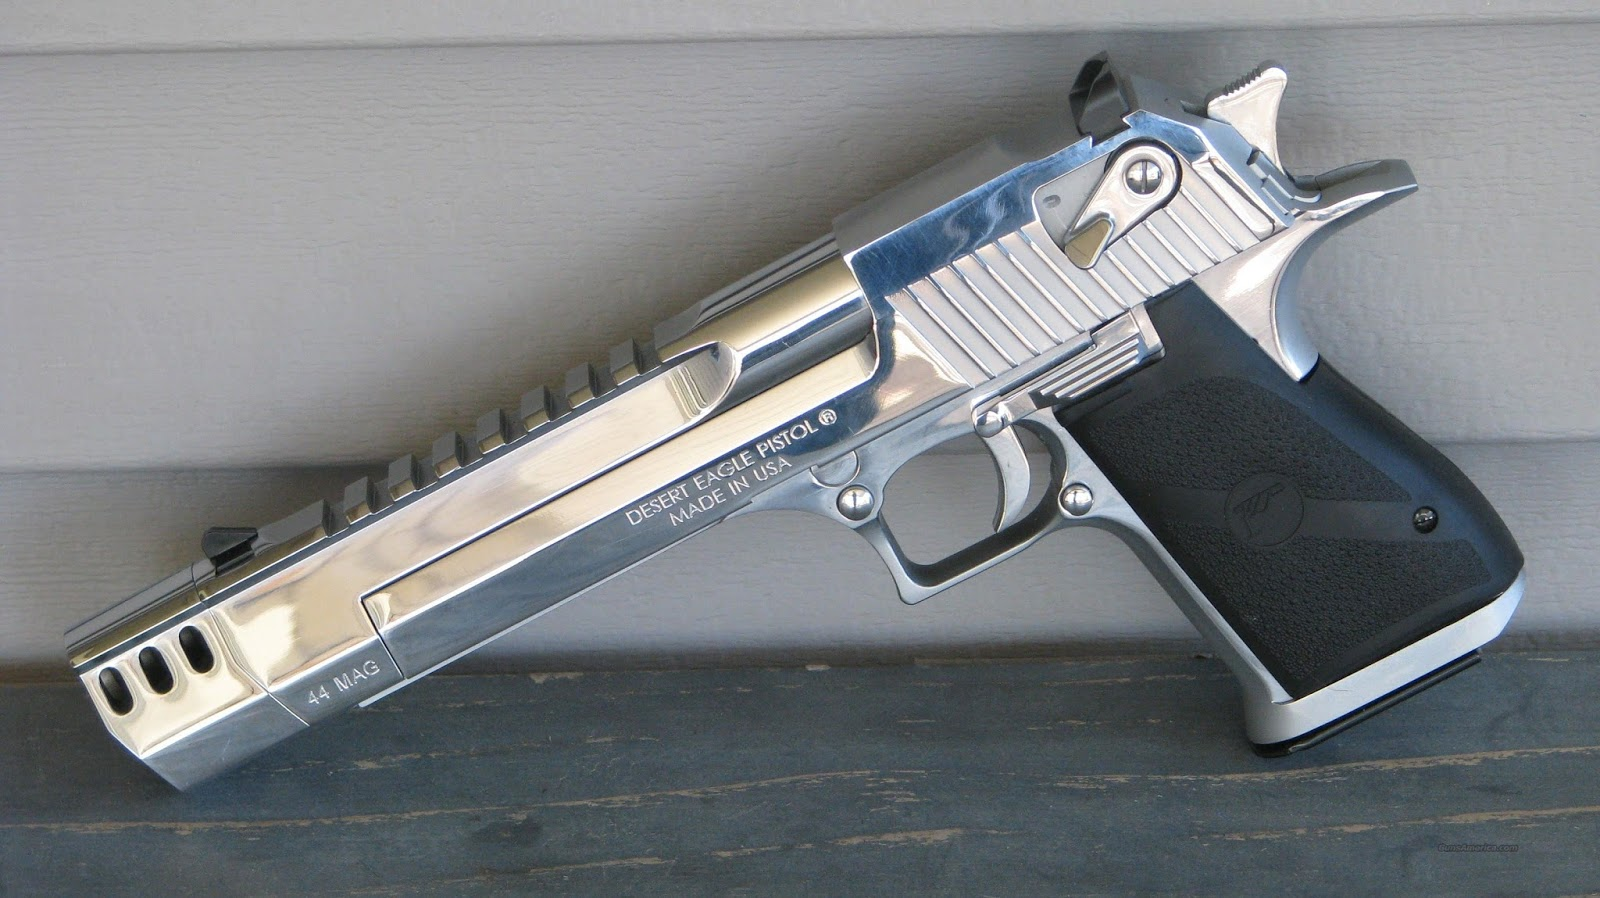 Defence horizon desert eagle 50 cal pistol for Photography pictures for sale